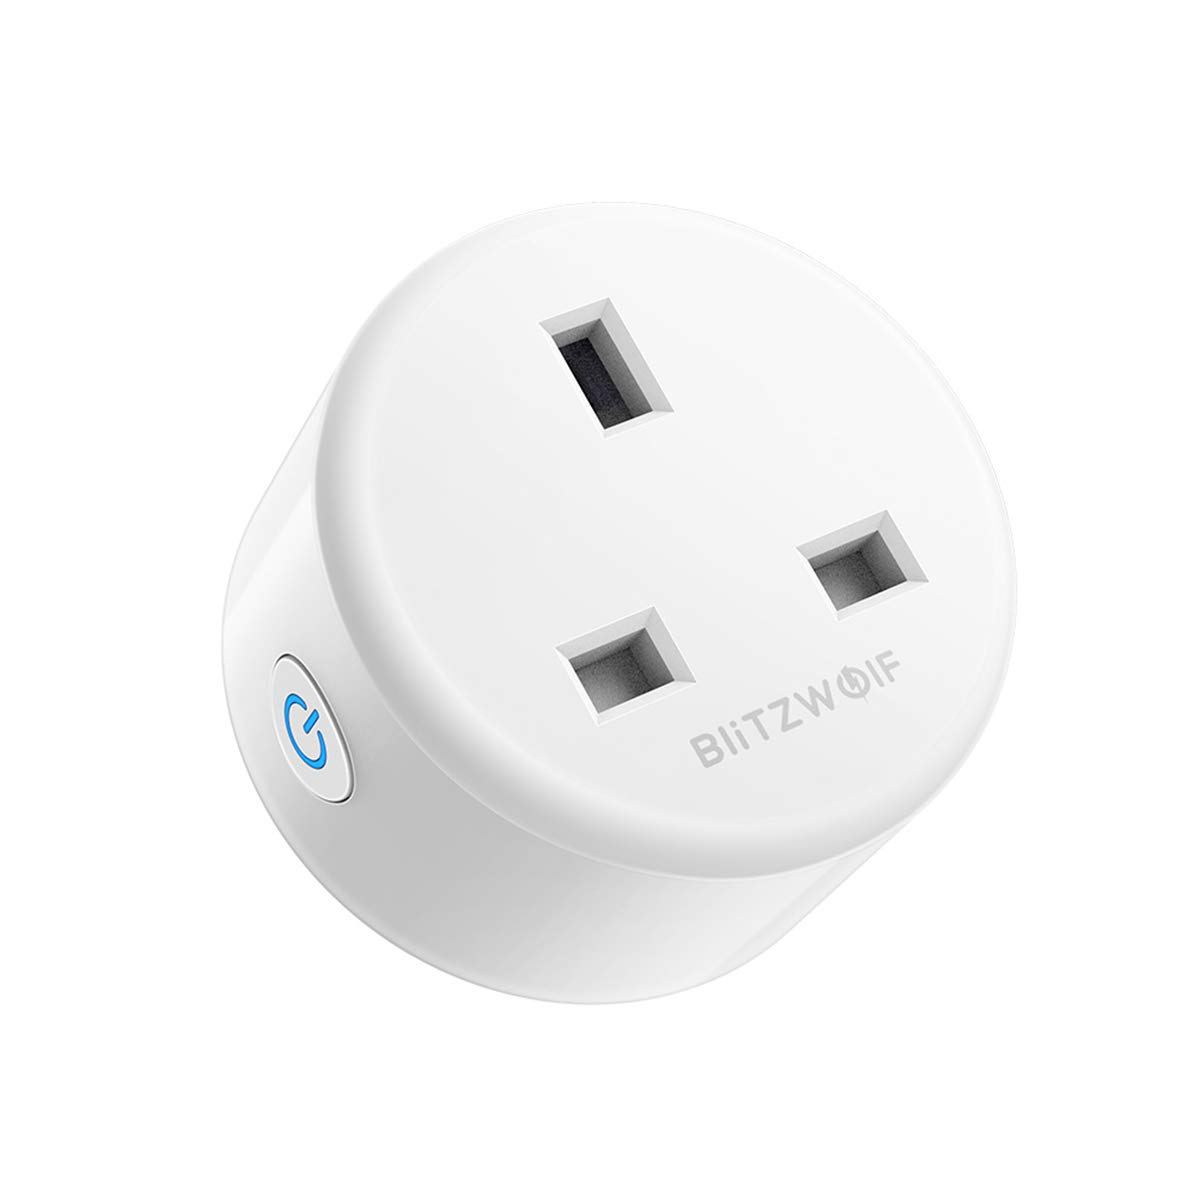 BlitzWolf Smart Plug Wifi Outlet Mini Plug Compatible with Amazon Alexa Google Home